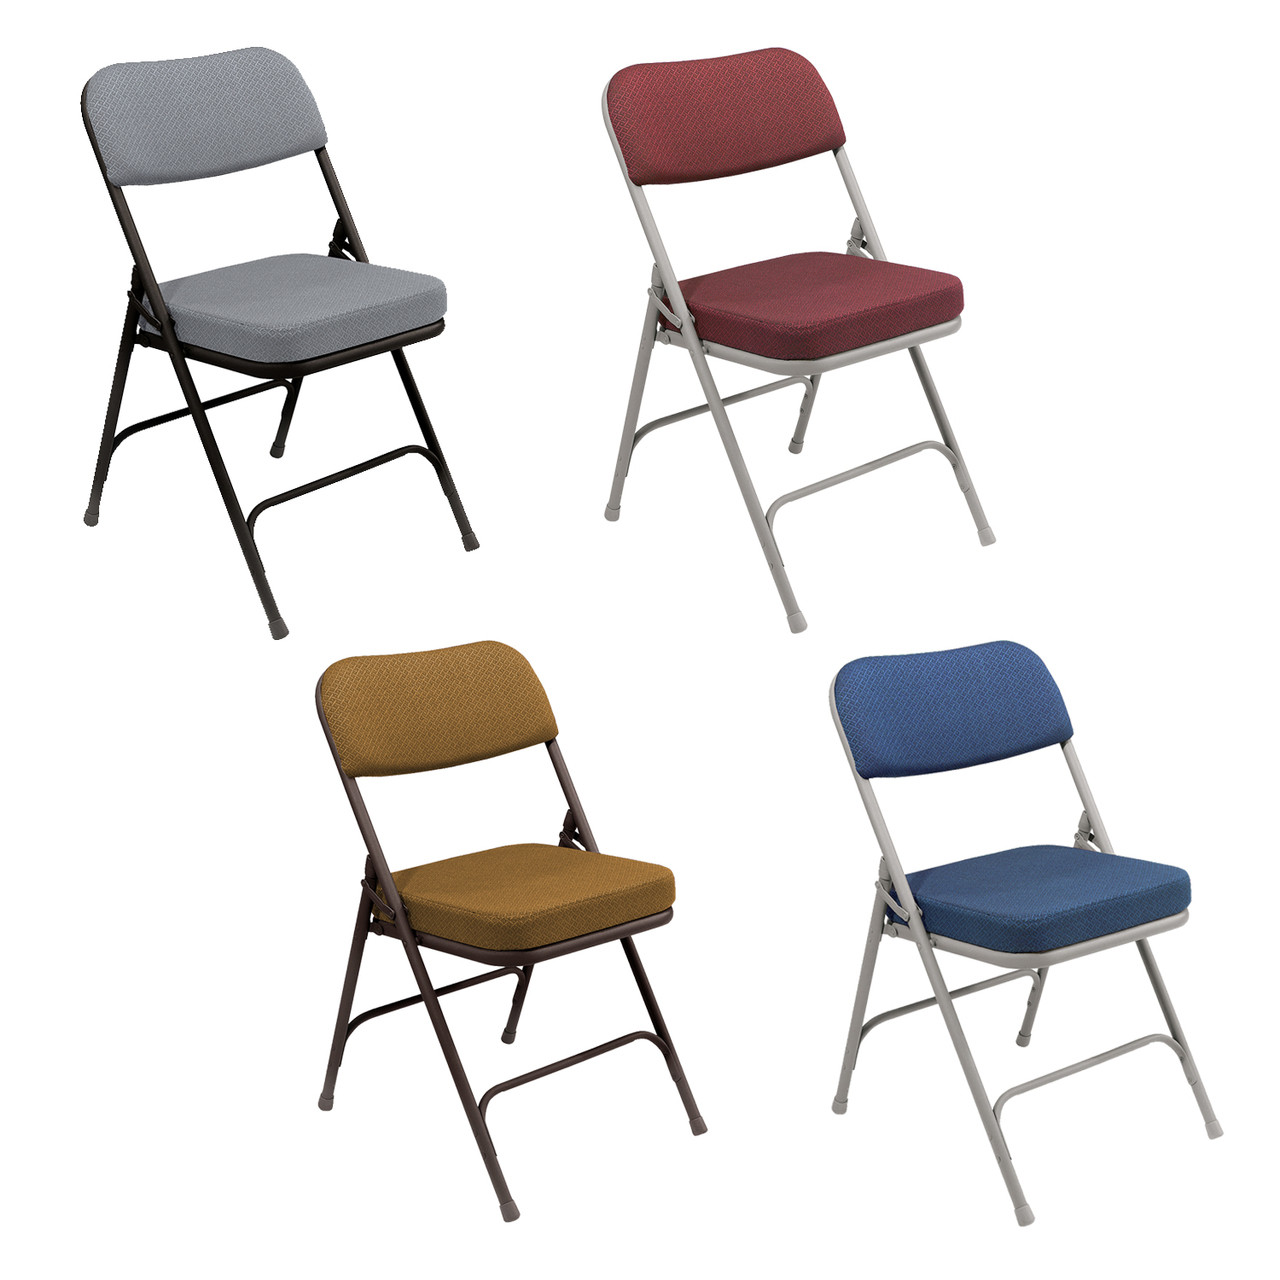 cloth padded folding chairs best fishing bed chair uk premium 2 thick fabric by national public seating 3200 series